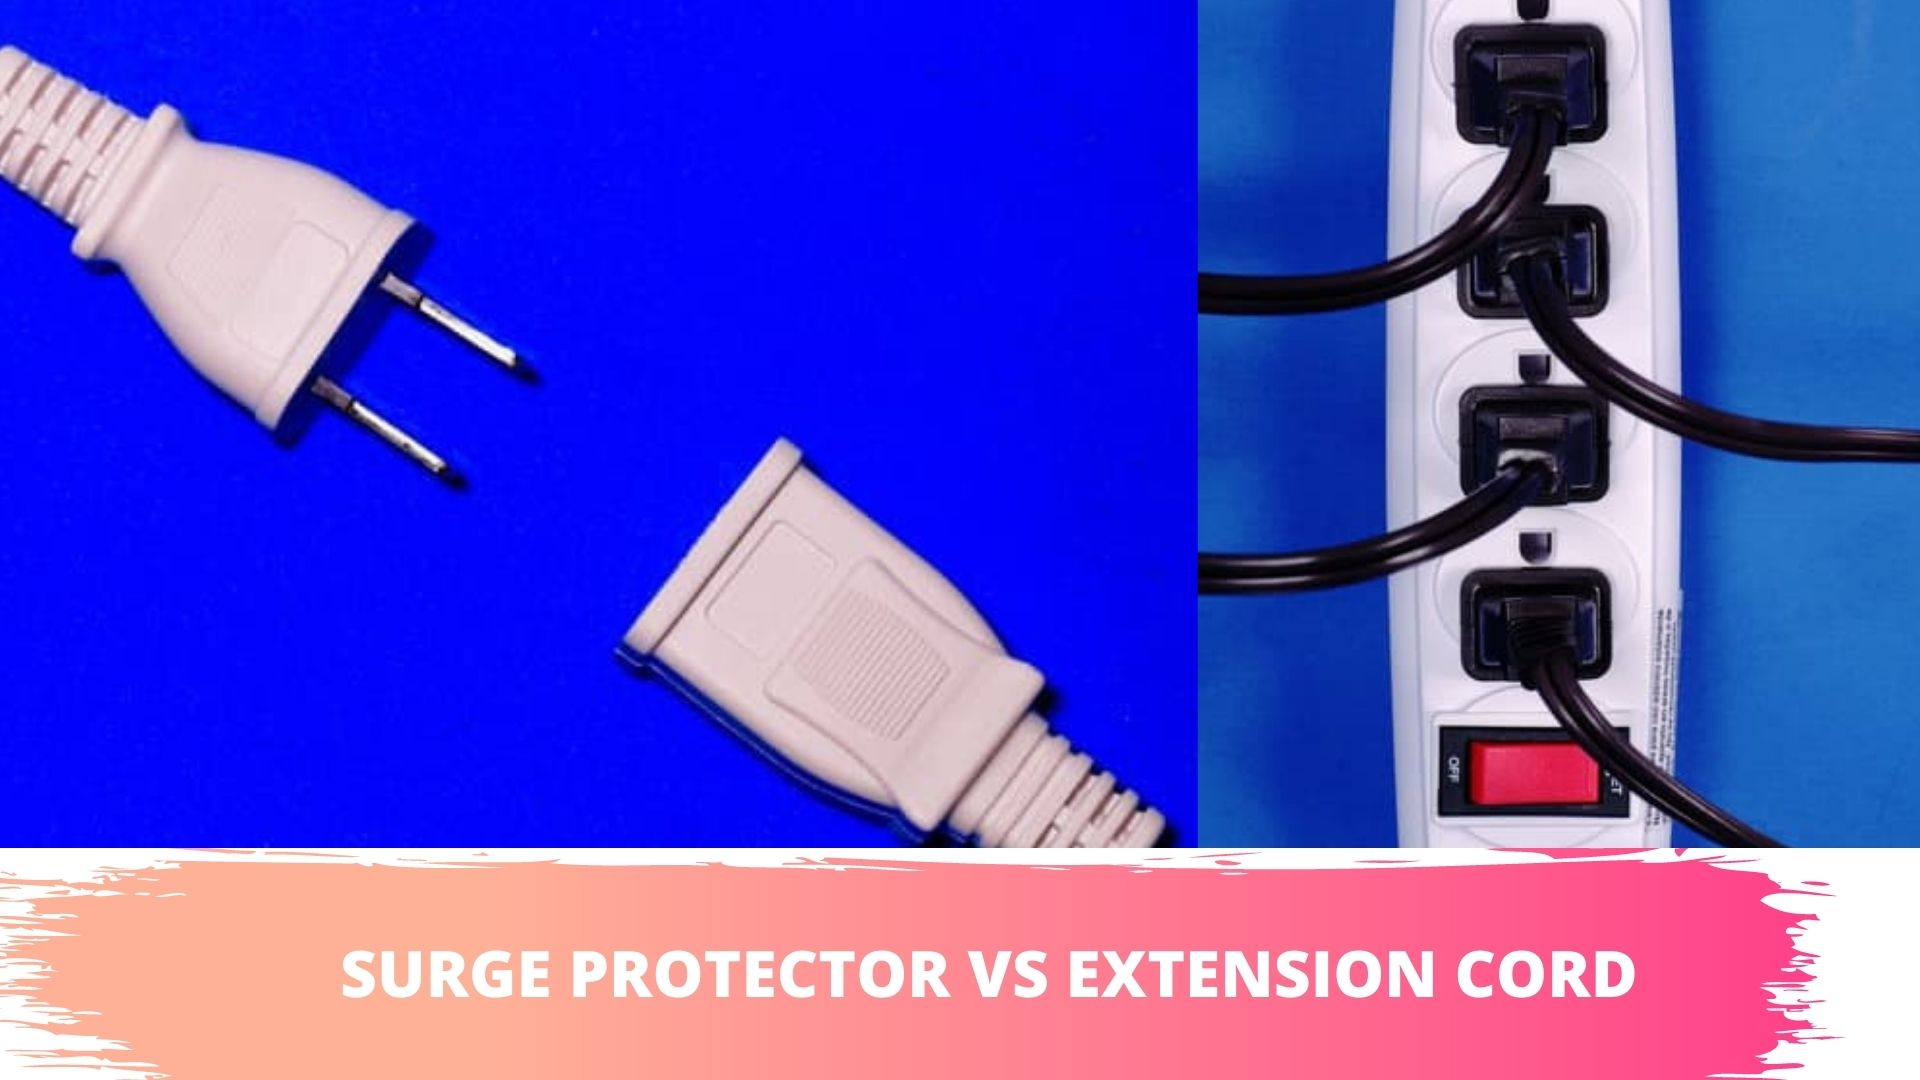 extension cord is different than surge protector